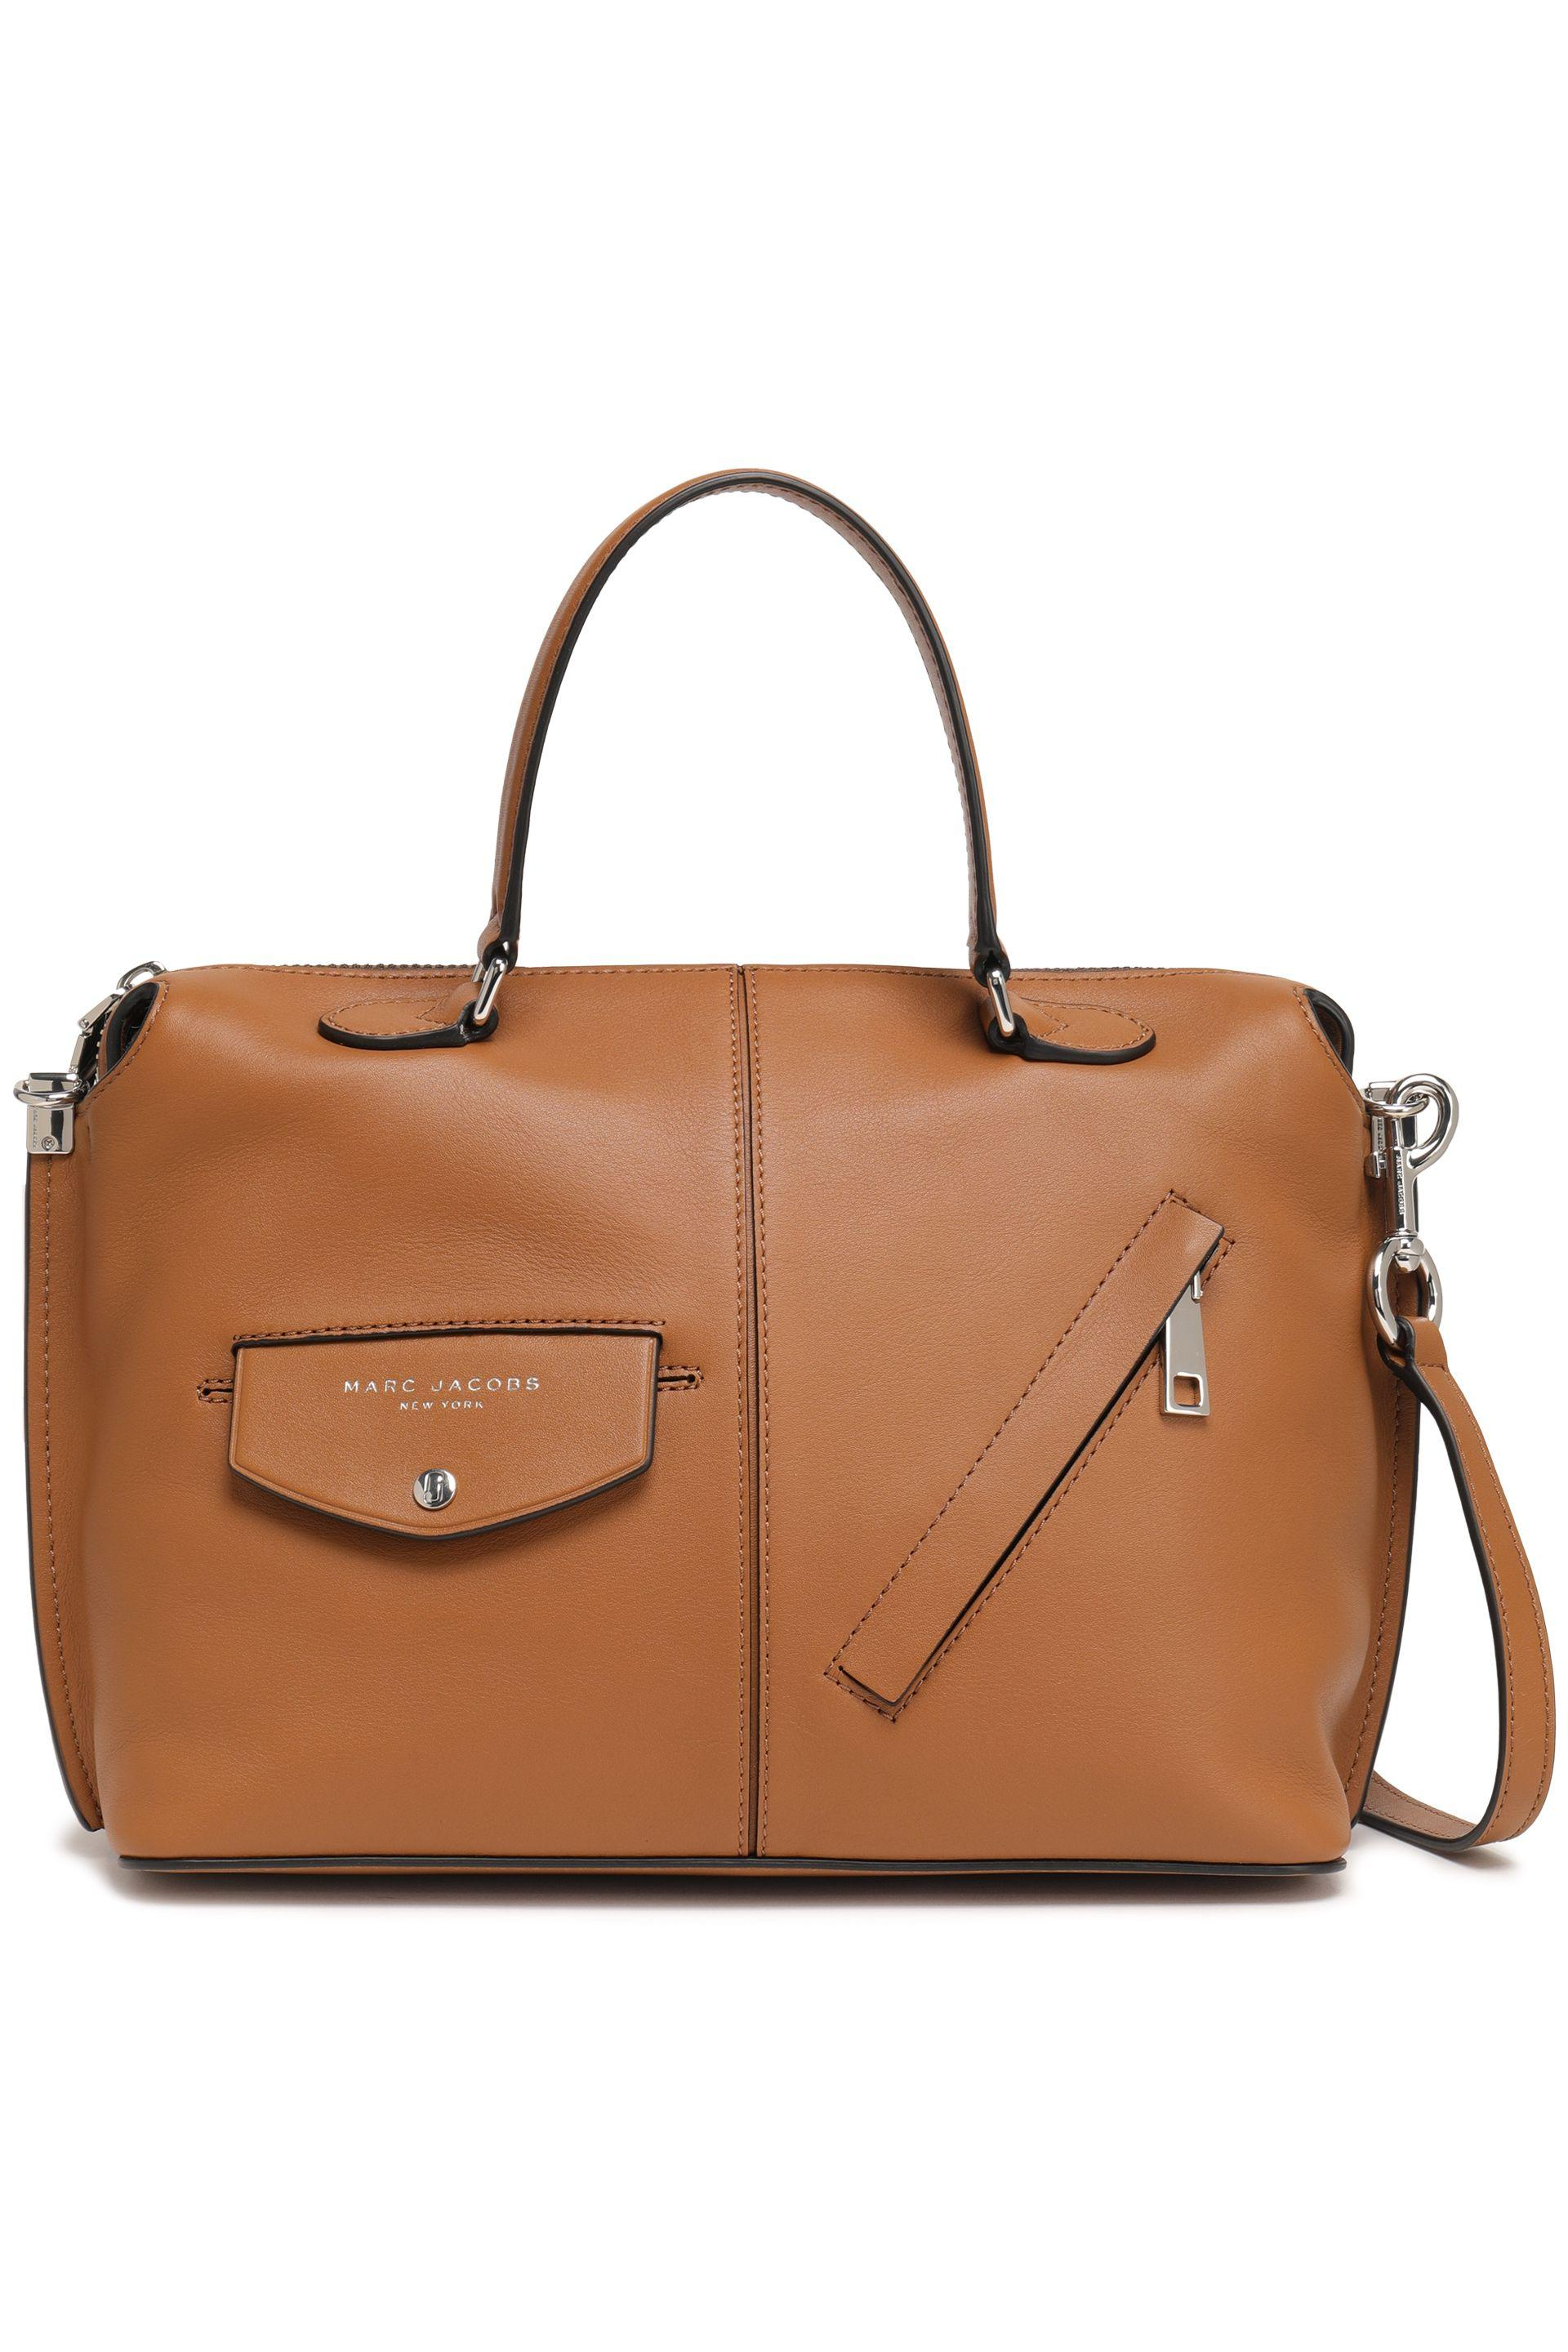 df55d31268a Marc Jacobs Woman Leather Shoulder Bag Light Brown in Brown - Lyst